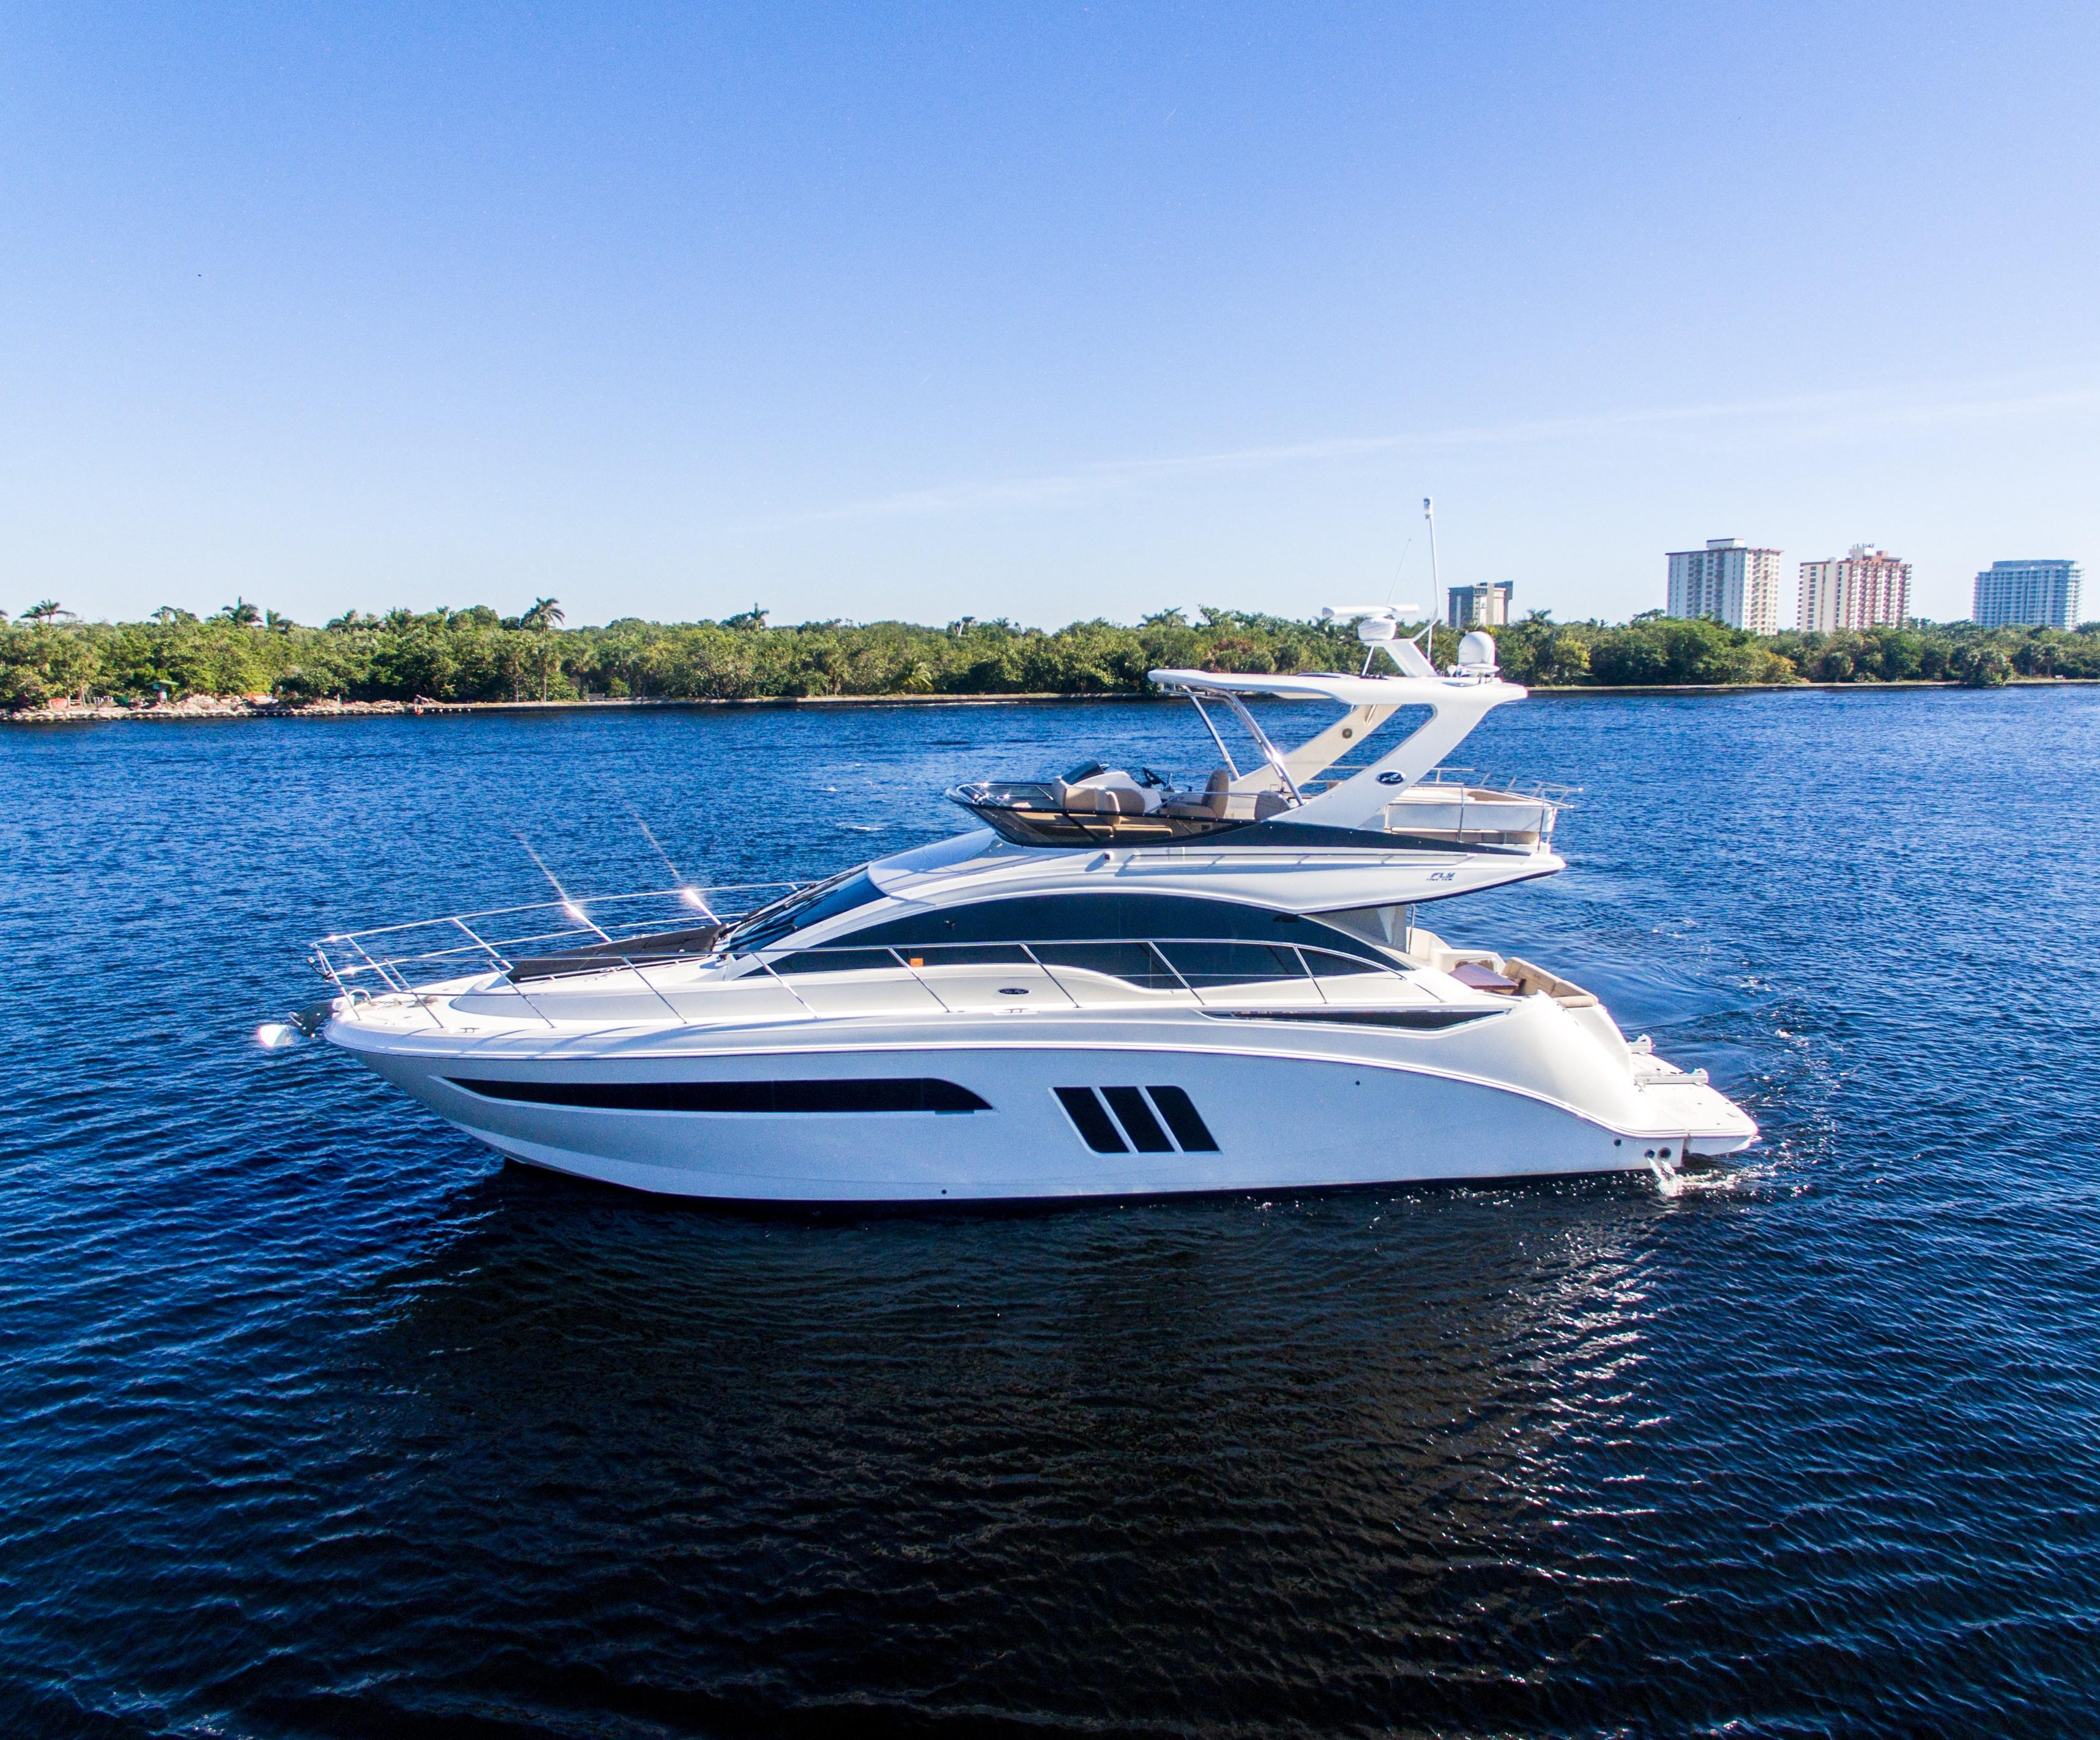 2015 Sea Ray 510 Fly Power Boat For Sale Www Yachtworld Com